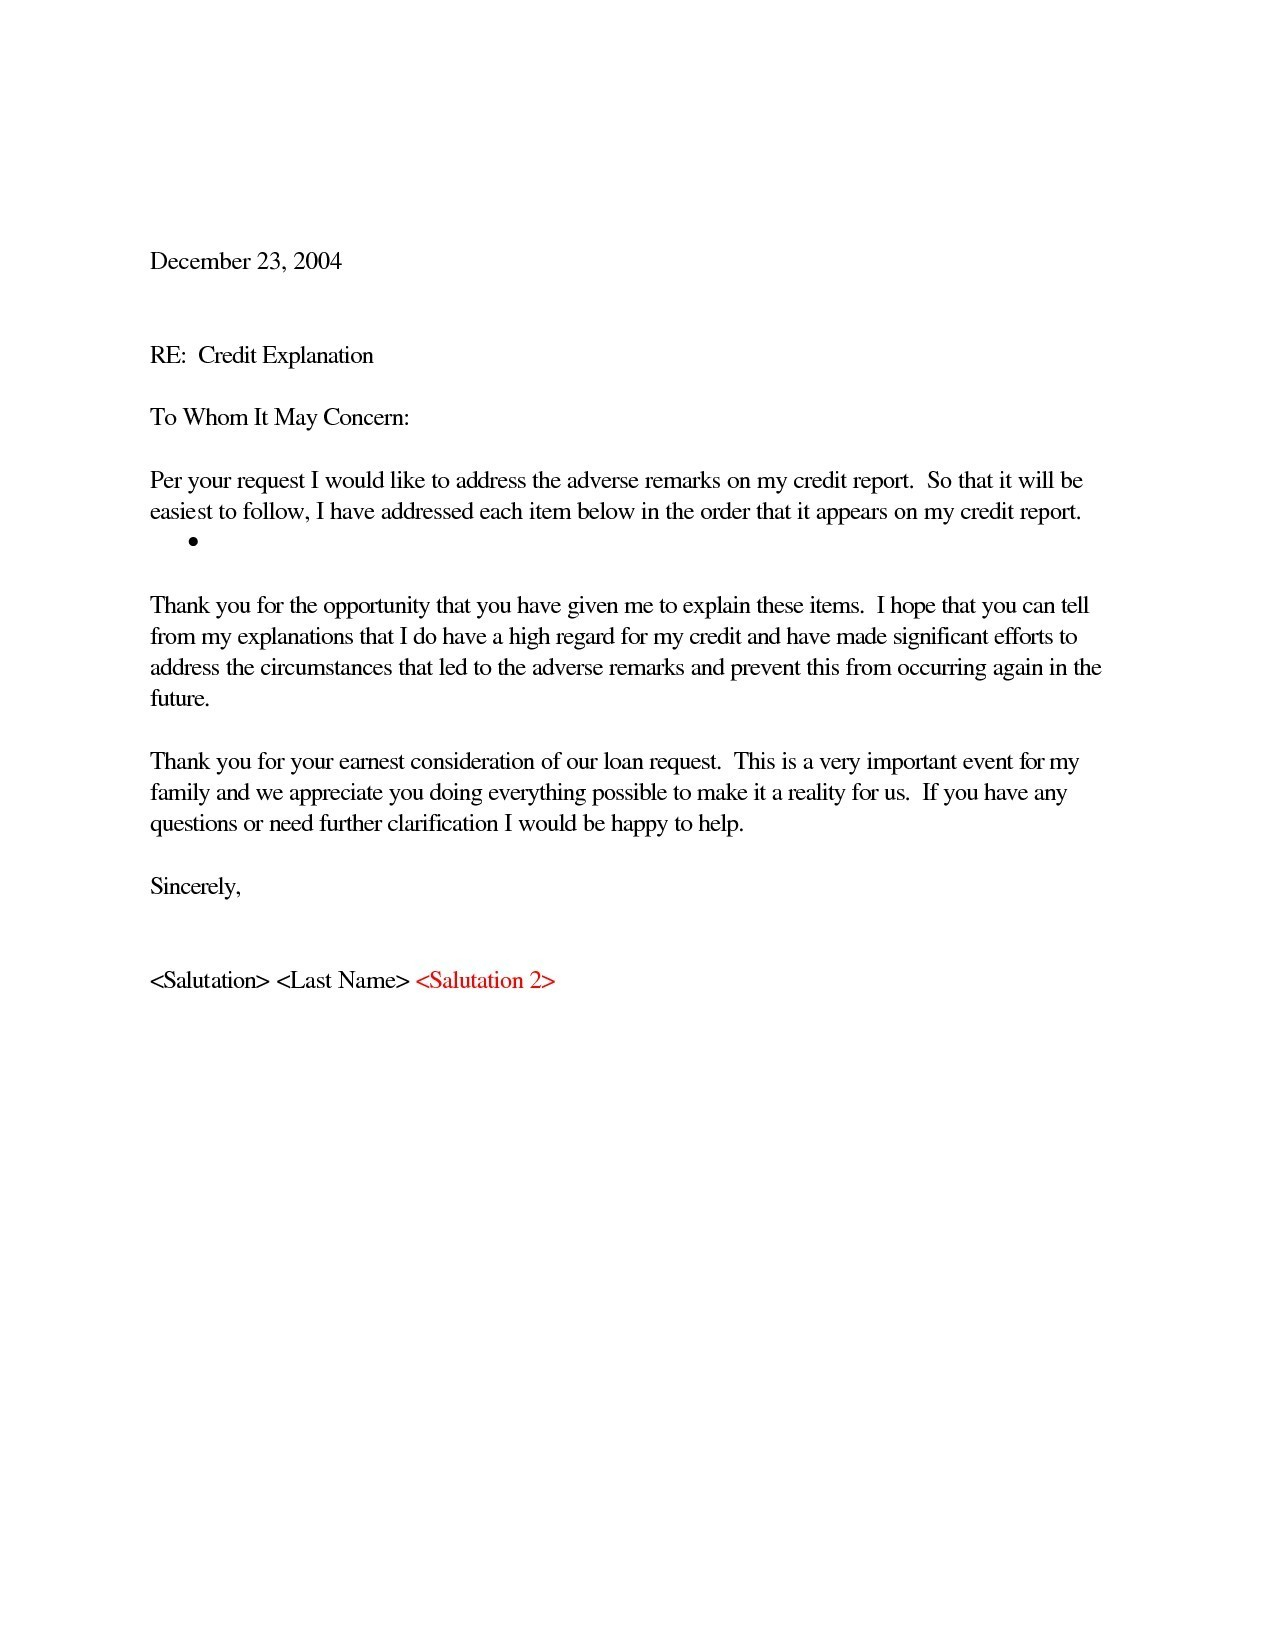 Mortgage Letter Of Explanation Template - Job Letter for Mortgage New Sample Cover Letter for Job Gap Save